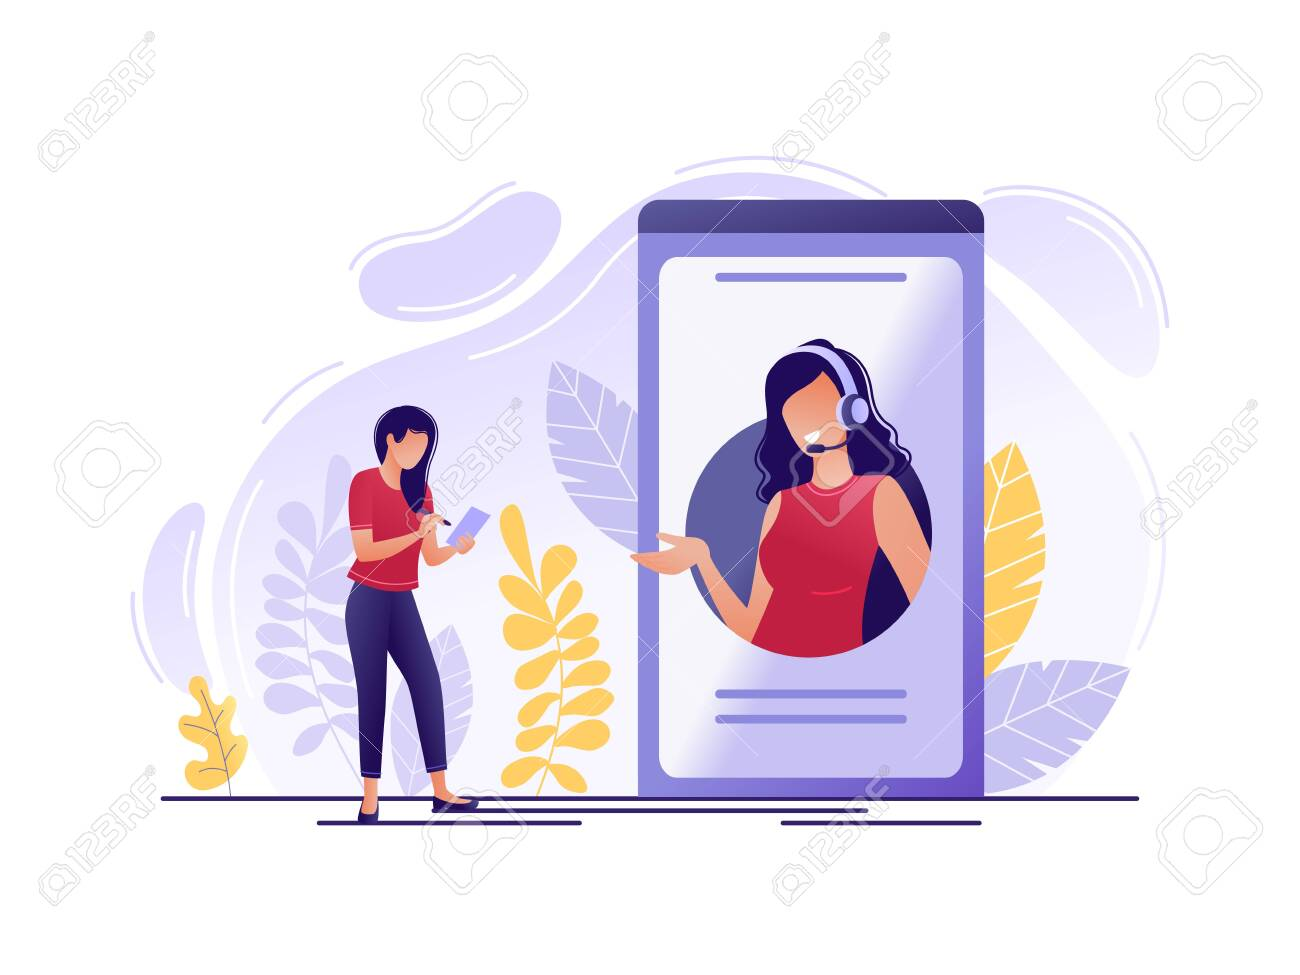 Online technical support. Woman near big phone with female hotline operator. Online assistant, virtual help service, 24-7, customer and operator. Flat concept vector illustration - 123180637